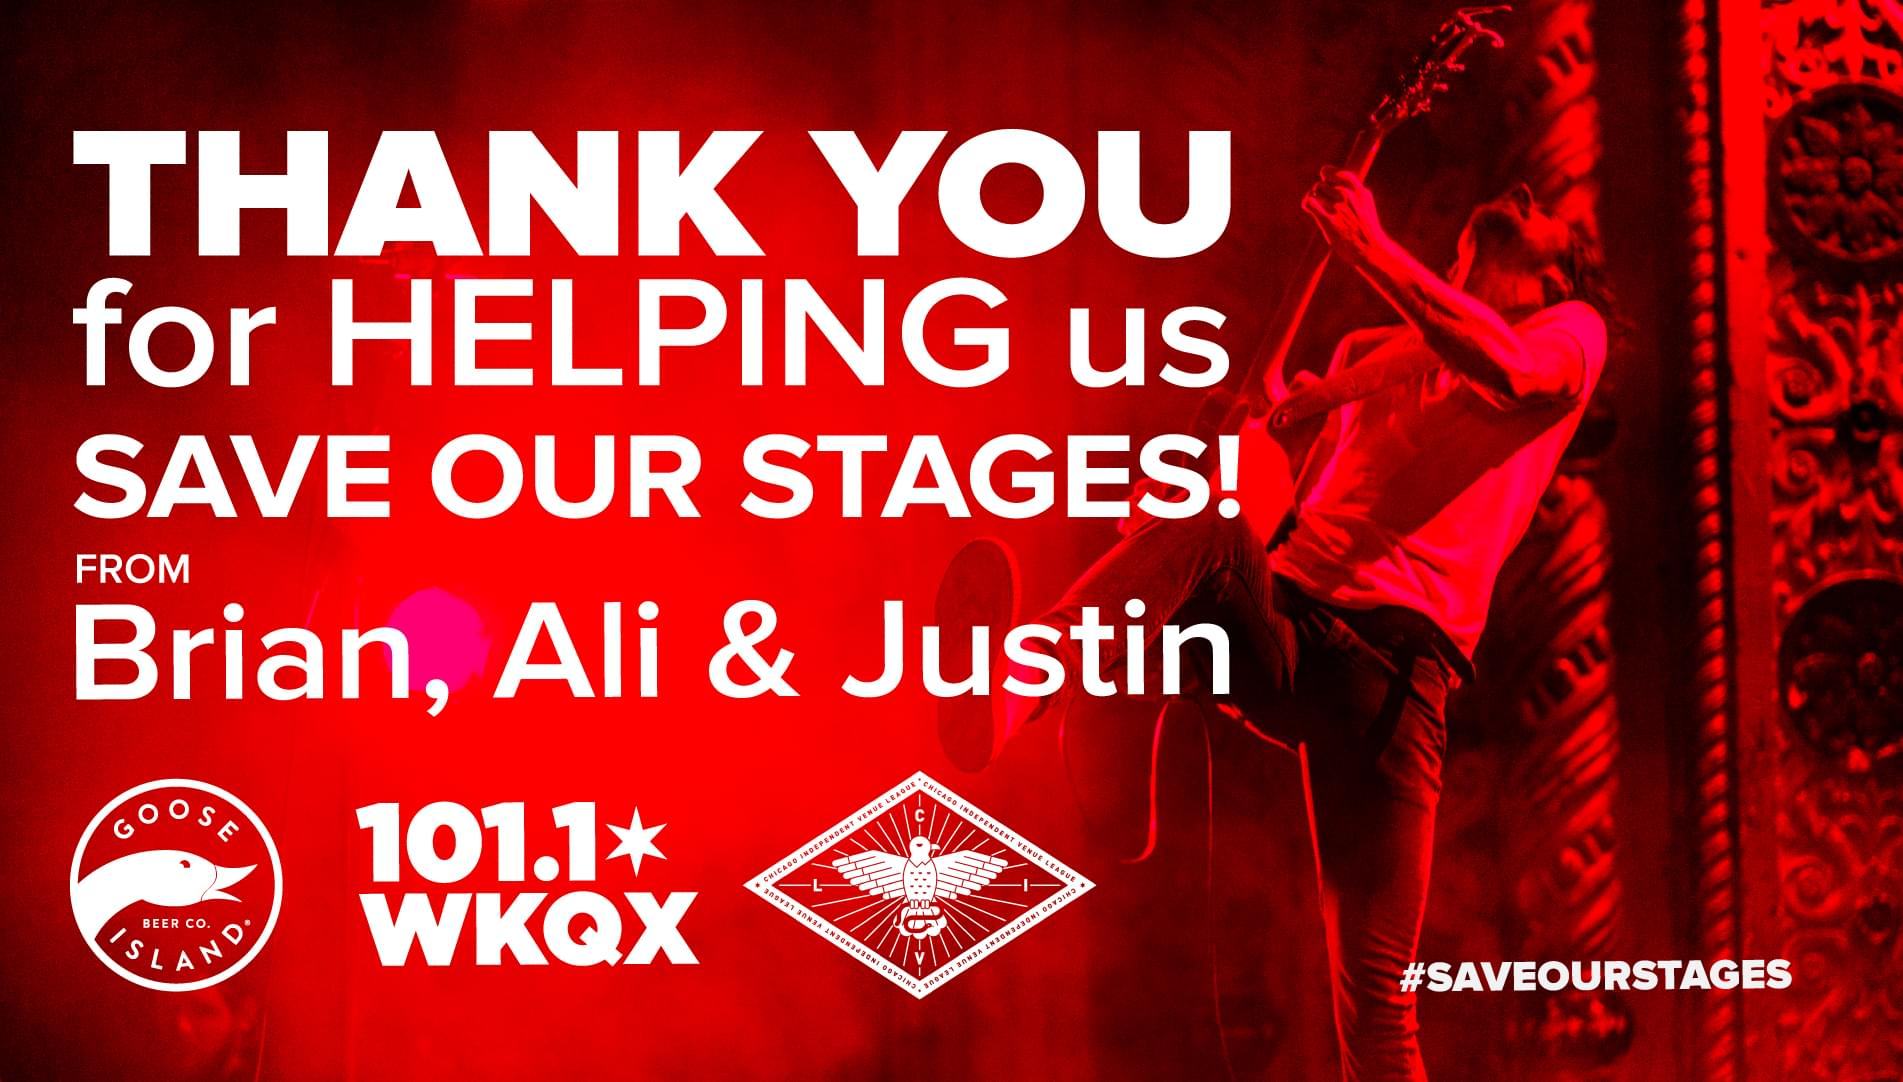 Brian, Ali and Justin: Save Our Stages Radiothon!